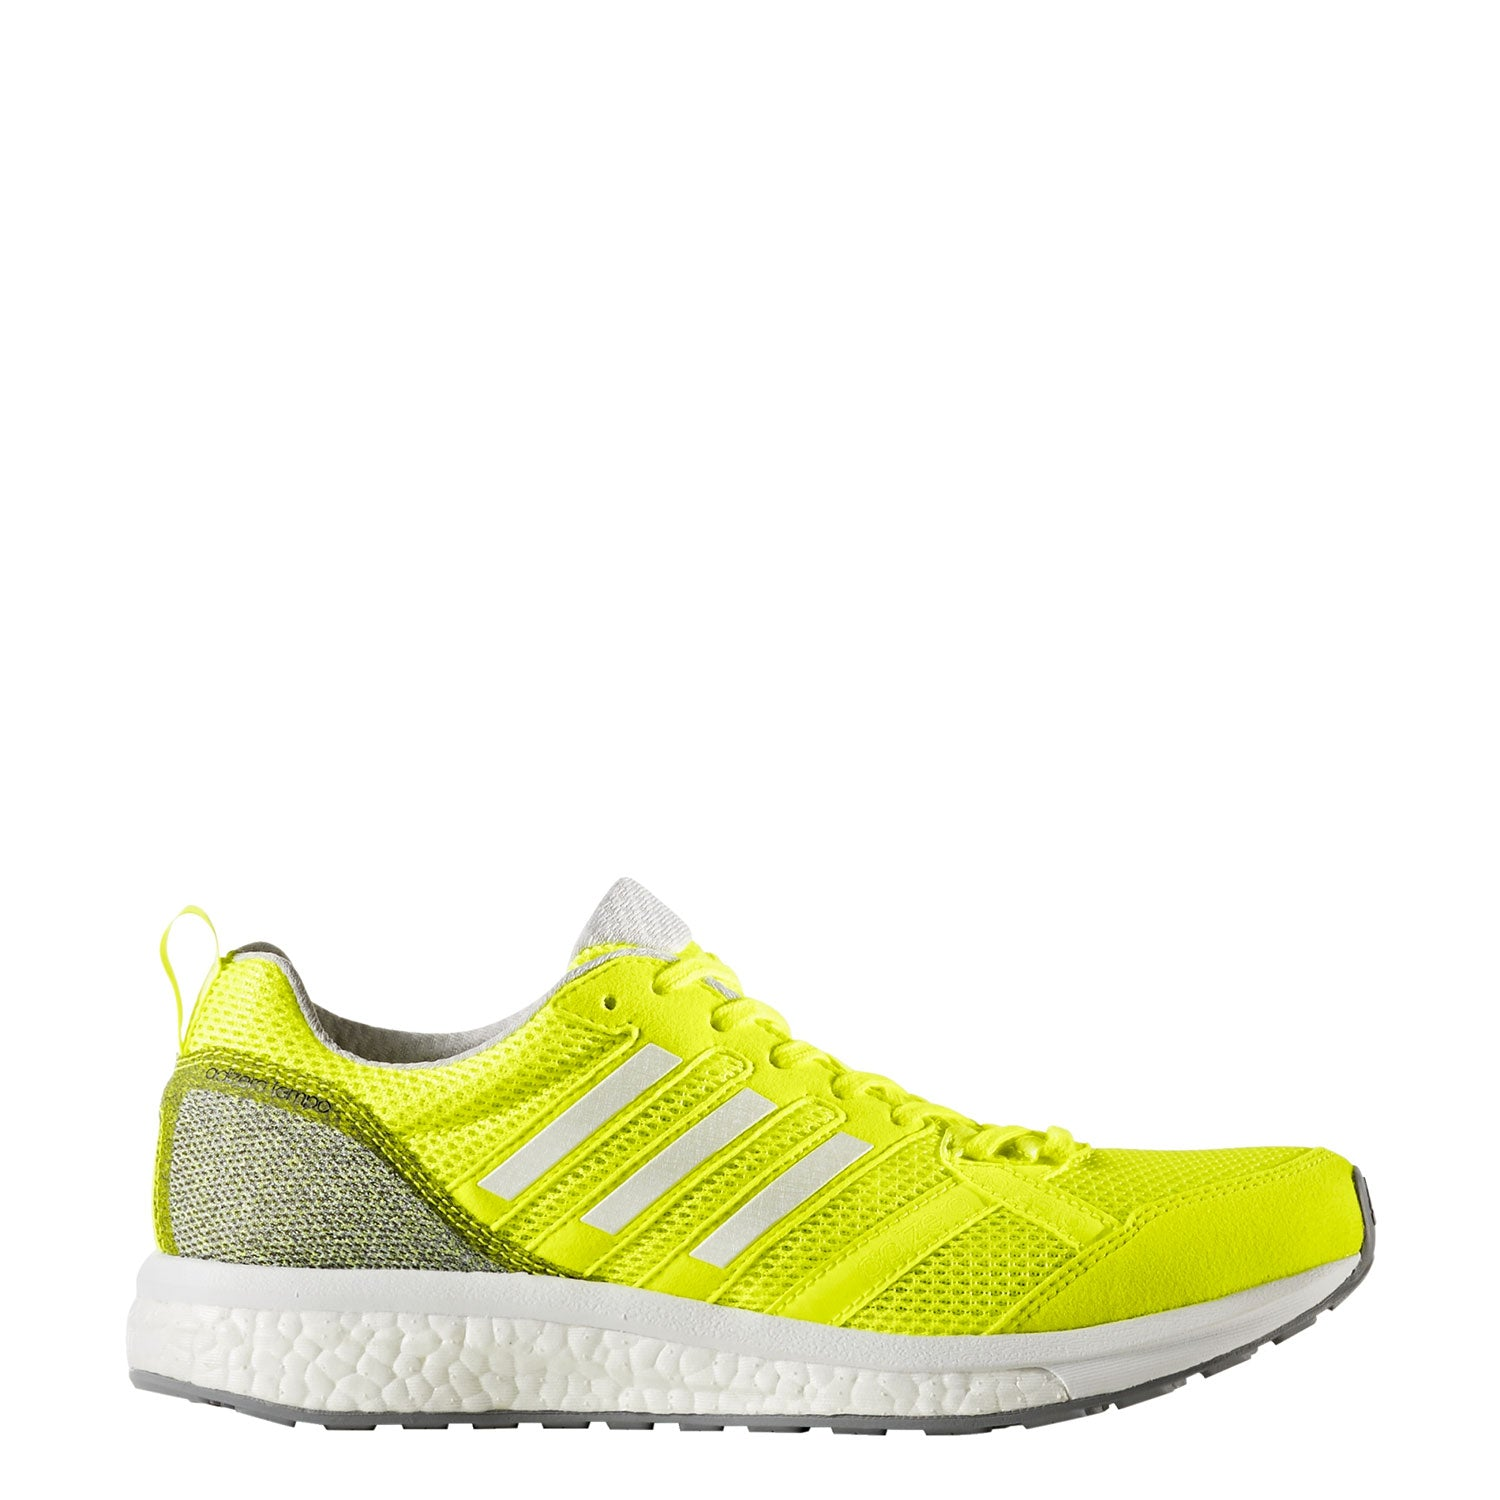 Https Products 2xu Mens Flight Compression D Island Shoes Style Hikers Dm Leather Cokelat Adi Ba8241 7esolar 20yellow 20 20footwear 20white 20grey 20onev1531785430